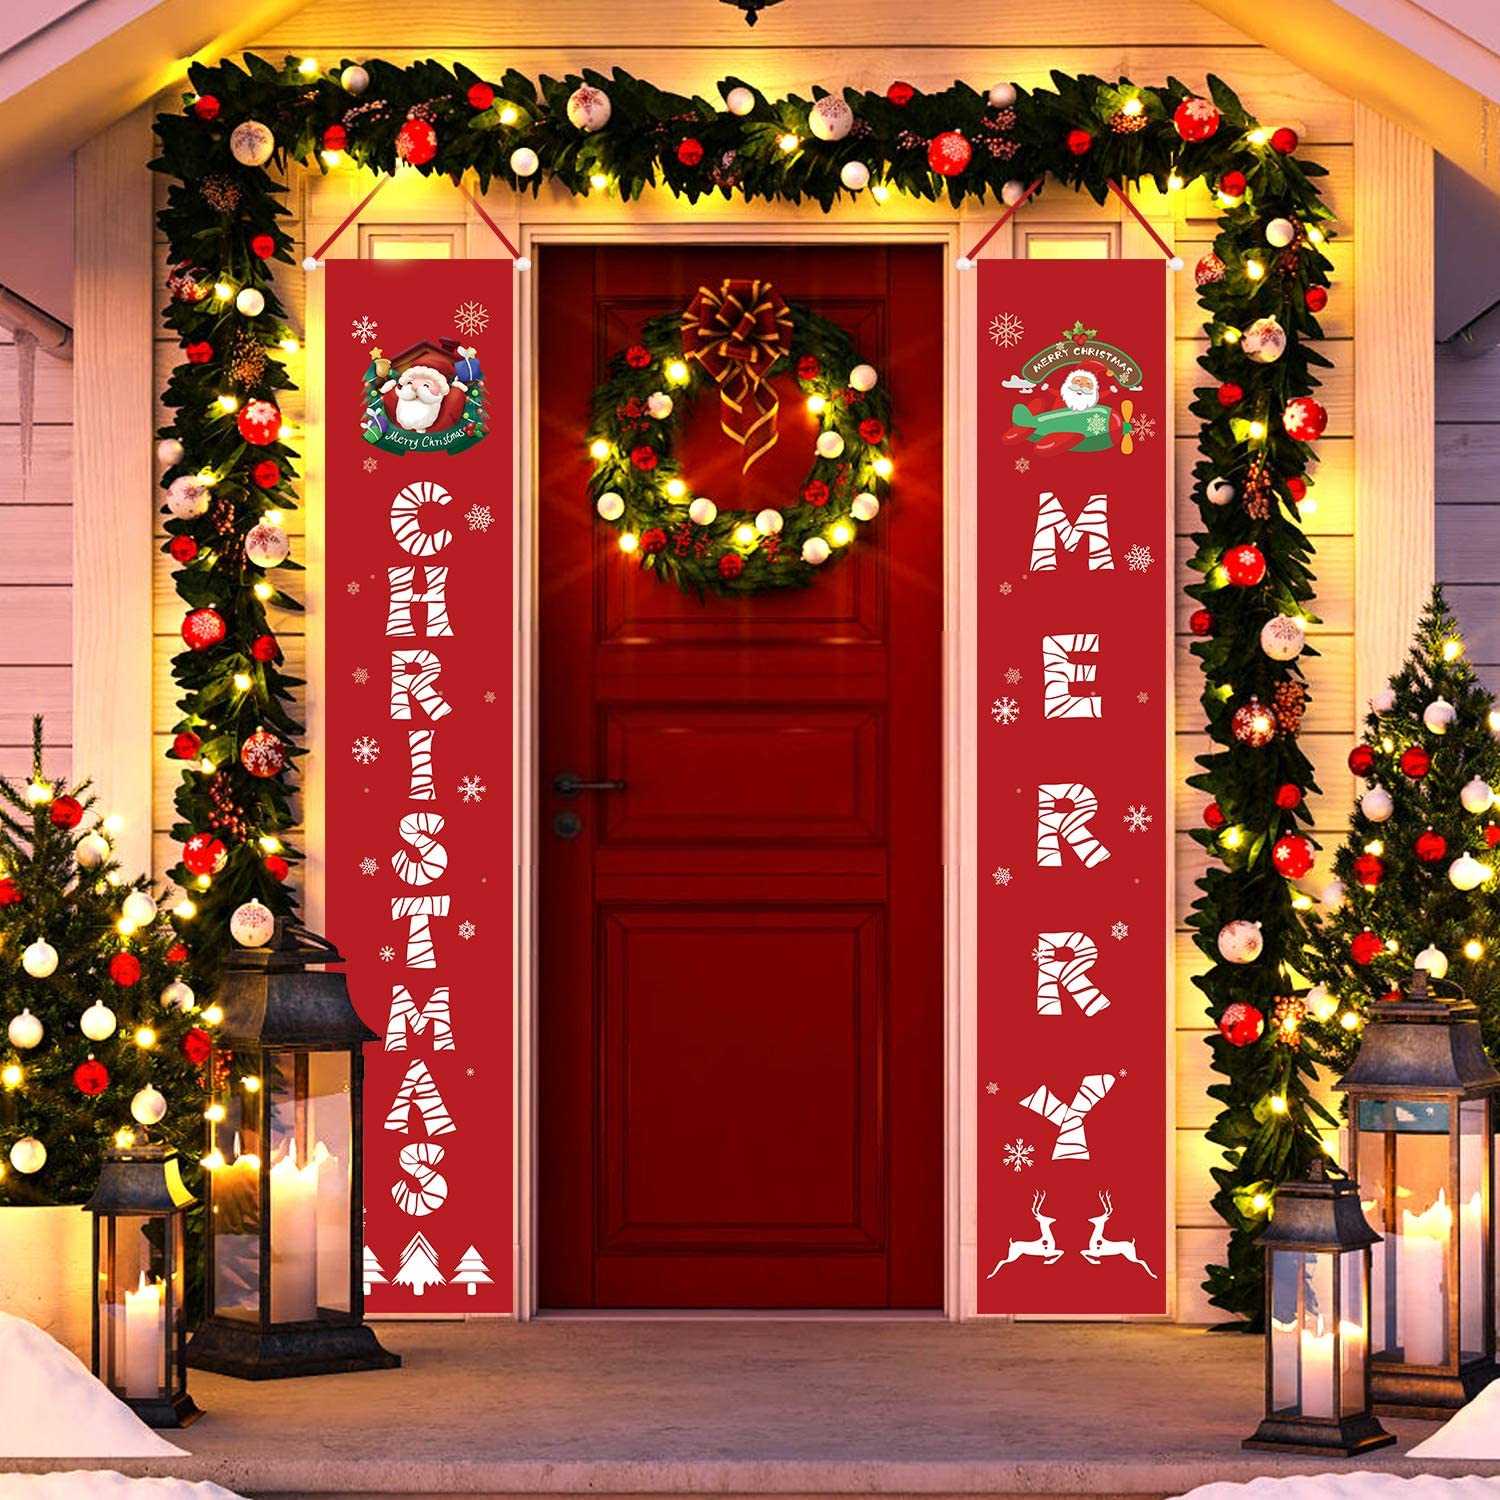 Tobeape Christmas Decorations Indoor Outdoor, Merry Christmas Porch Signs for Front Door Yard Home Decor, Hanging Banners Flag for New Year Xmas Winter Holiday Party Supplies, Large Size 13 X 73 Inch